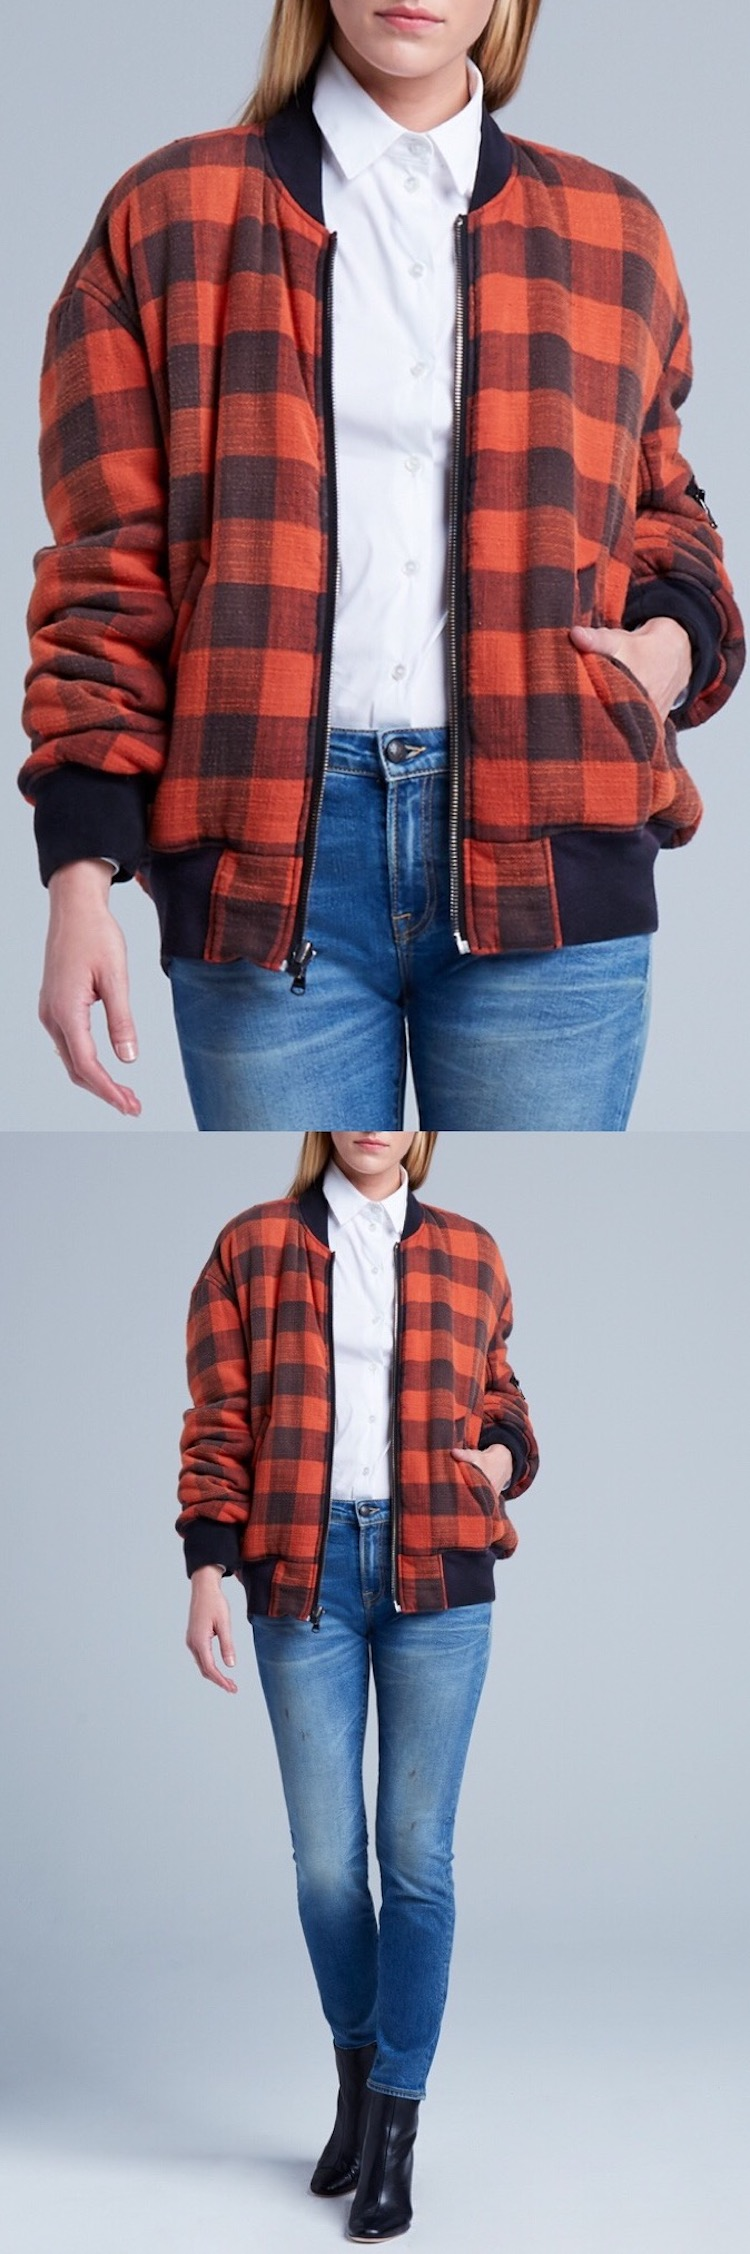 Flannel and denim jacket outfit  Reversible Double Plaid Flight Jacket  Plaid jacket Fall fashion